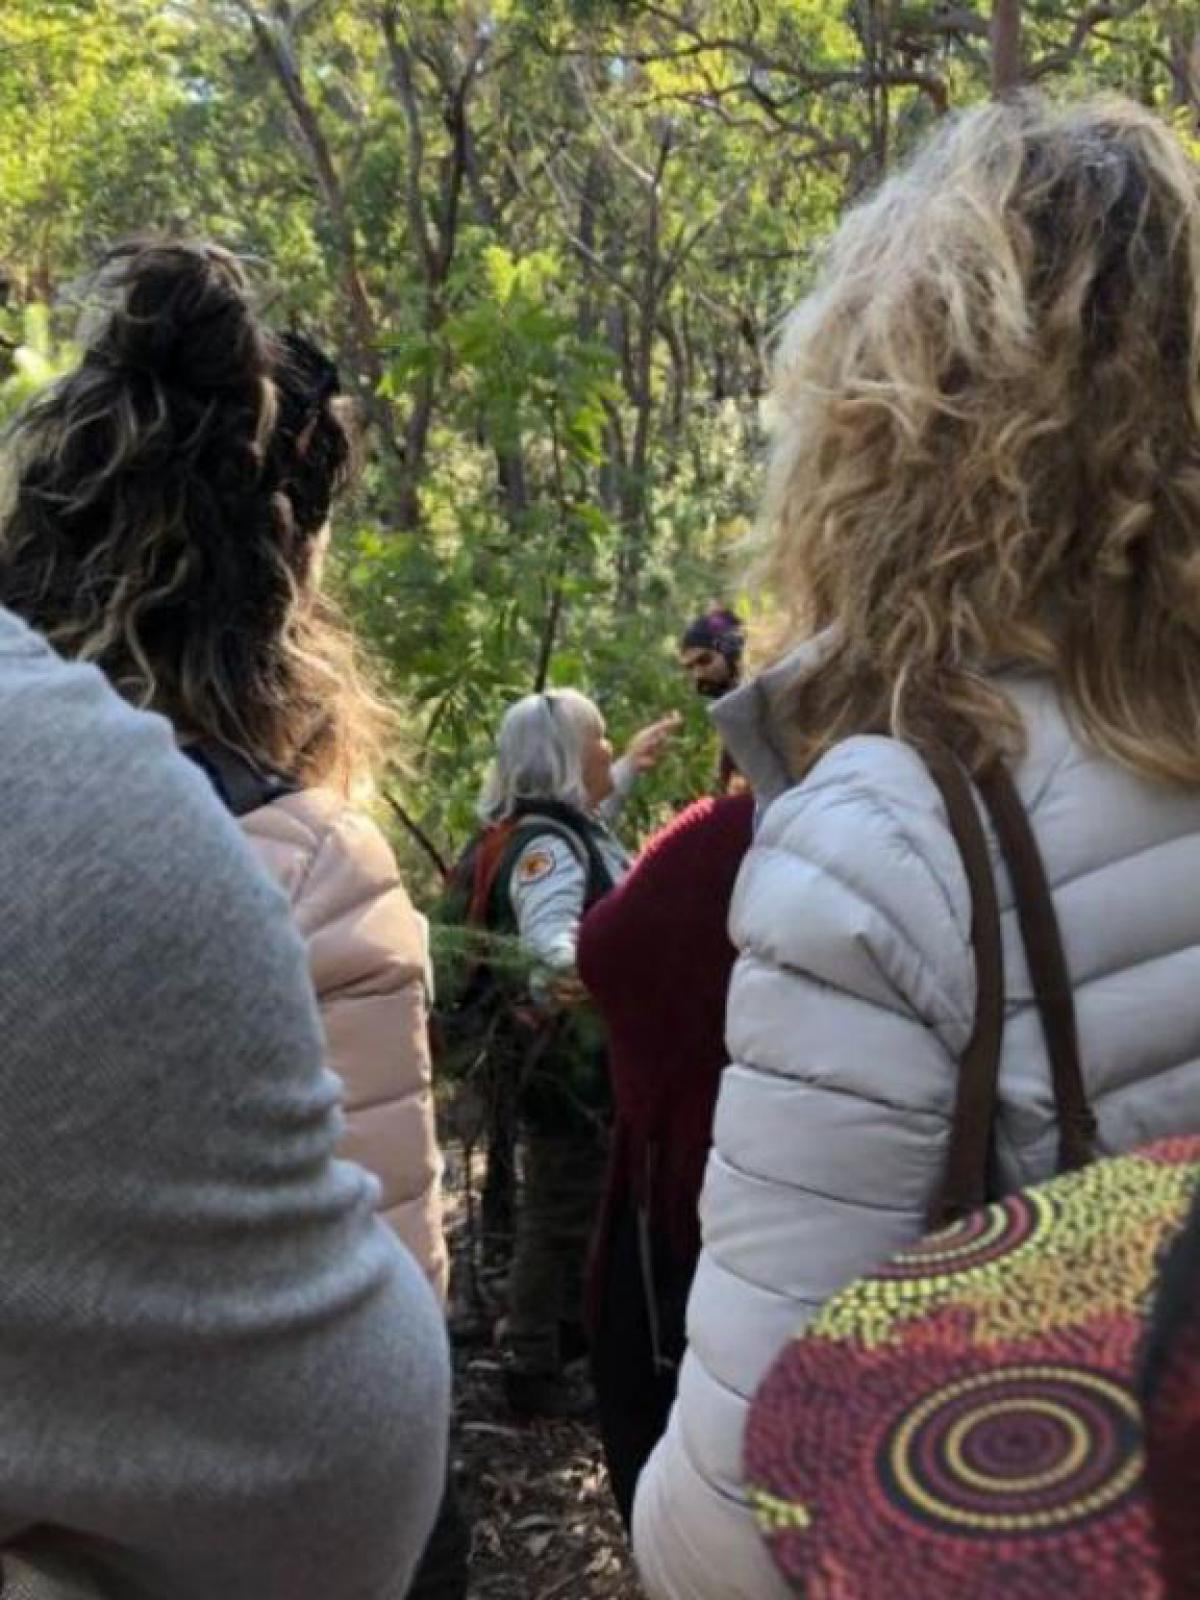 Aboriginal Discovery Ranger with participants looking on.